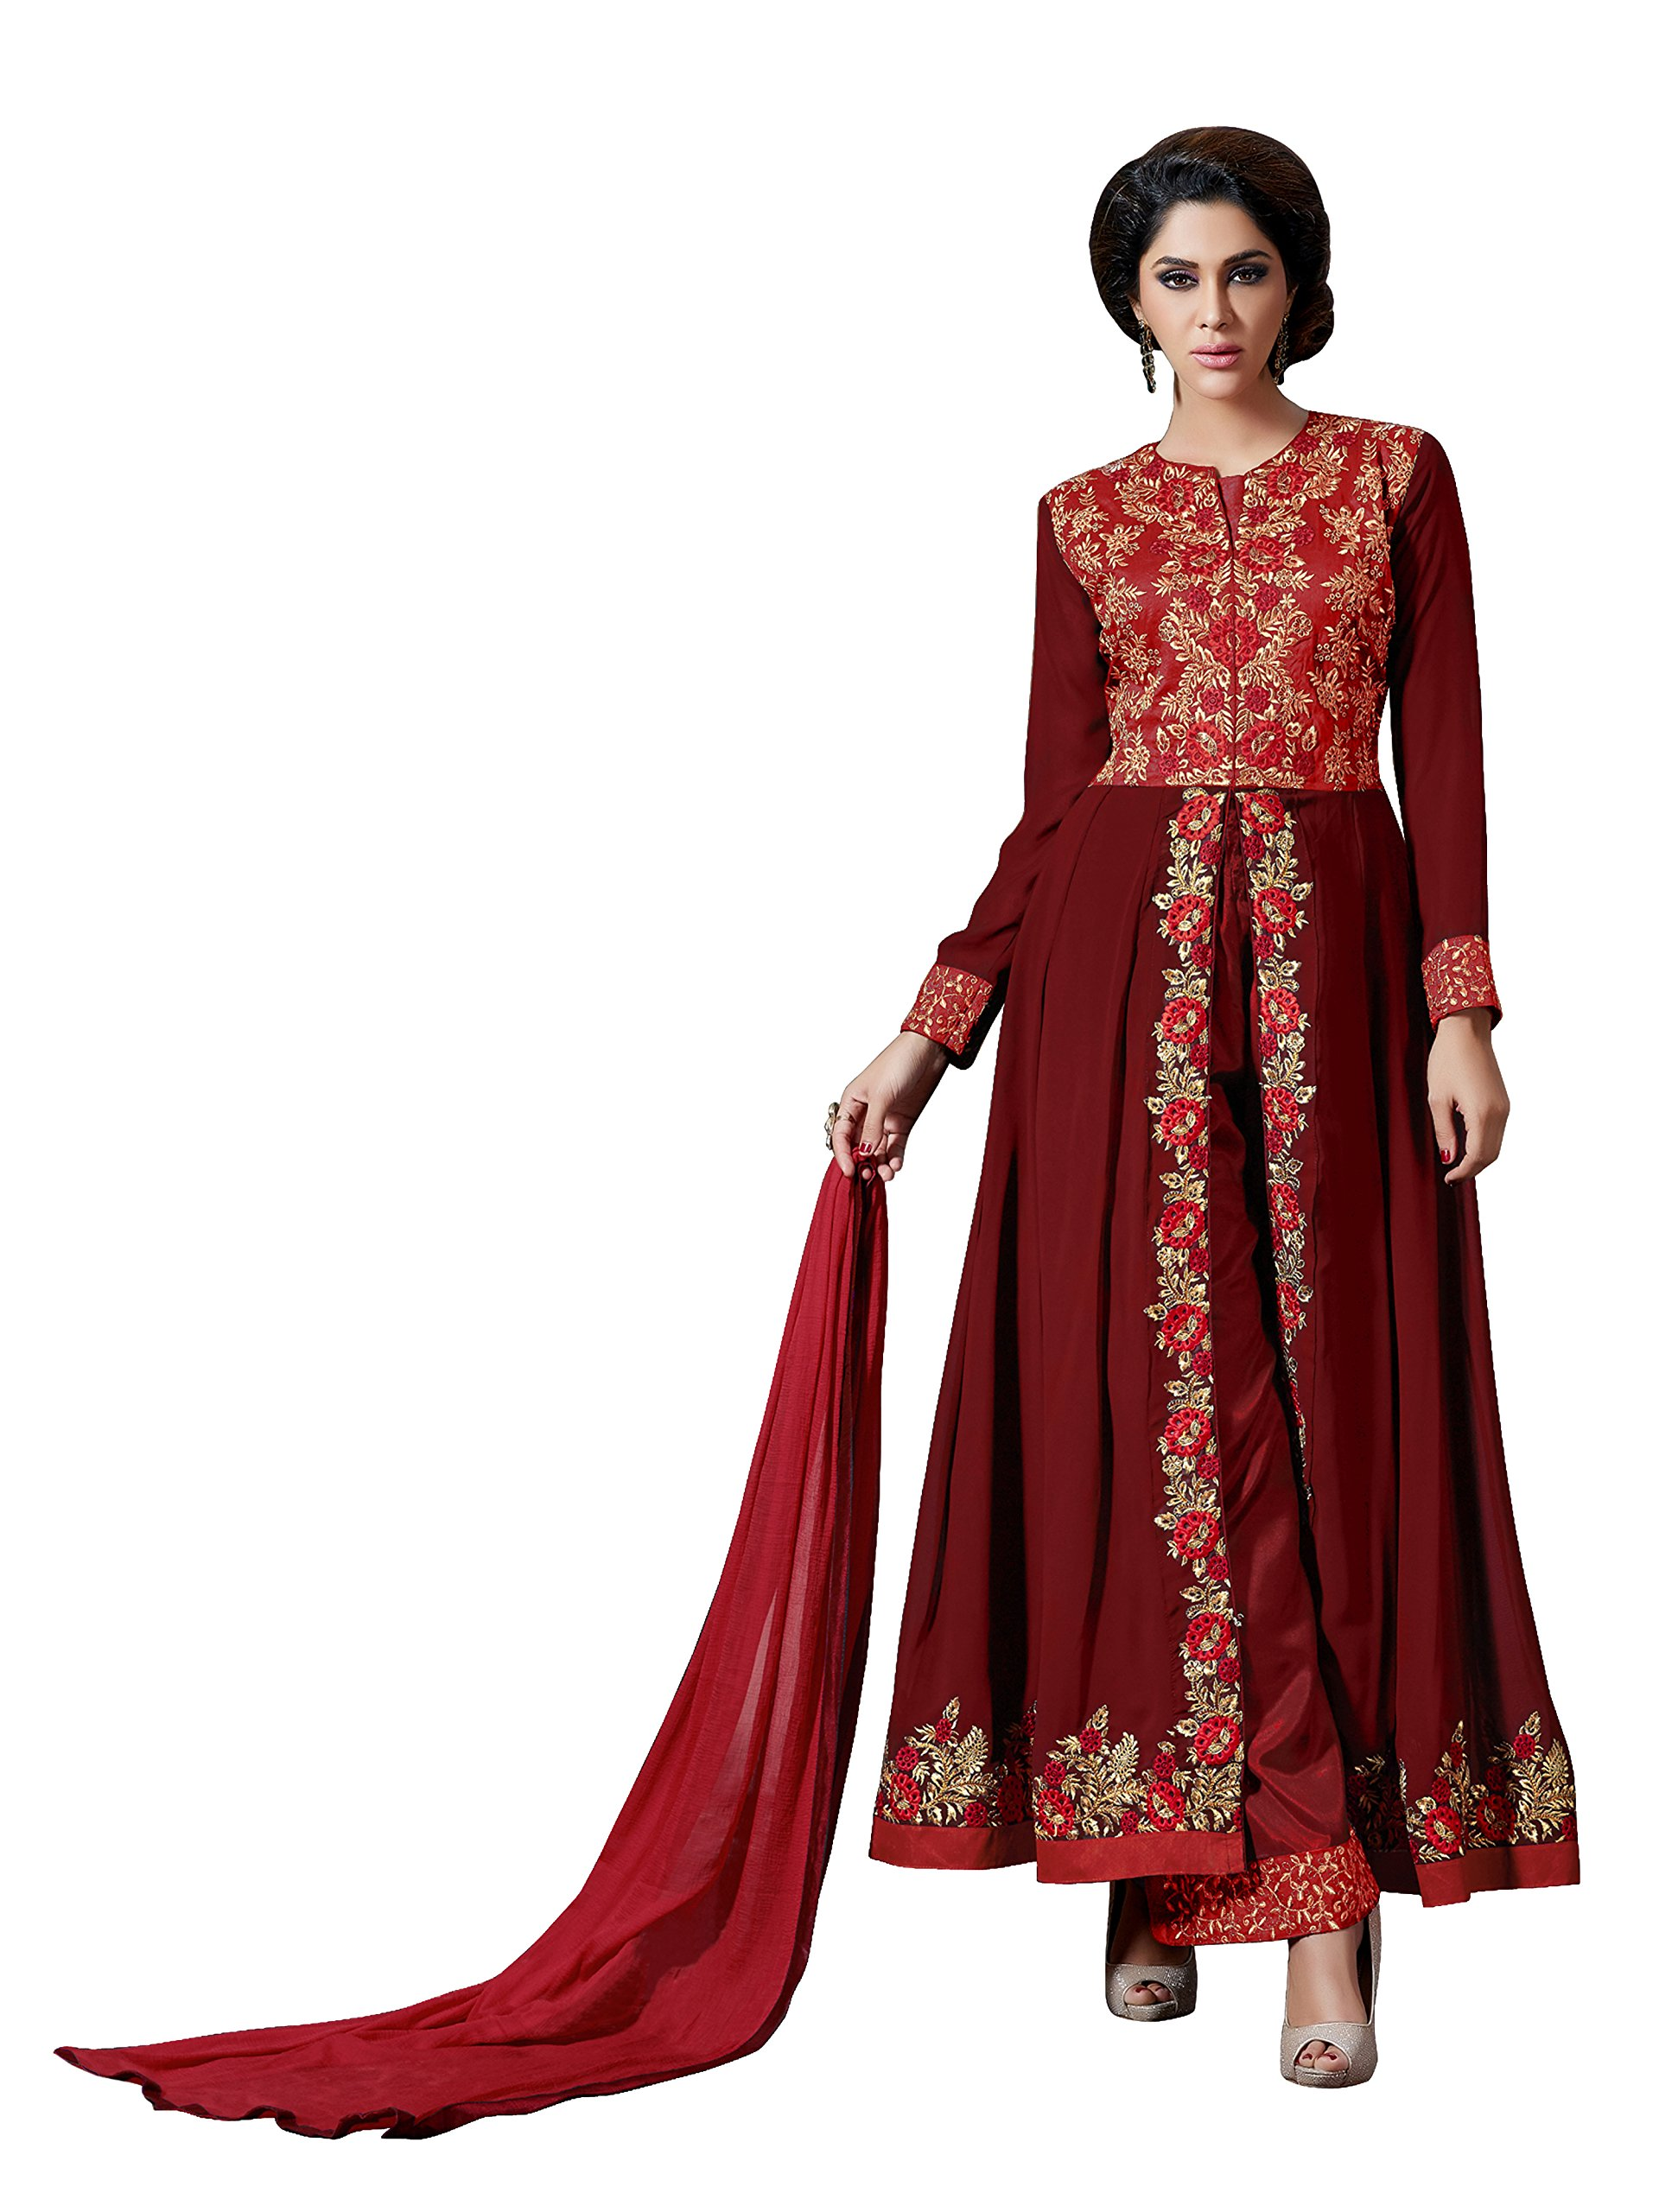 Sourbh Women's Maroon Faux Georgette Embroidered Semi-Stitched Partywear Dress Material